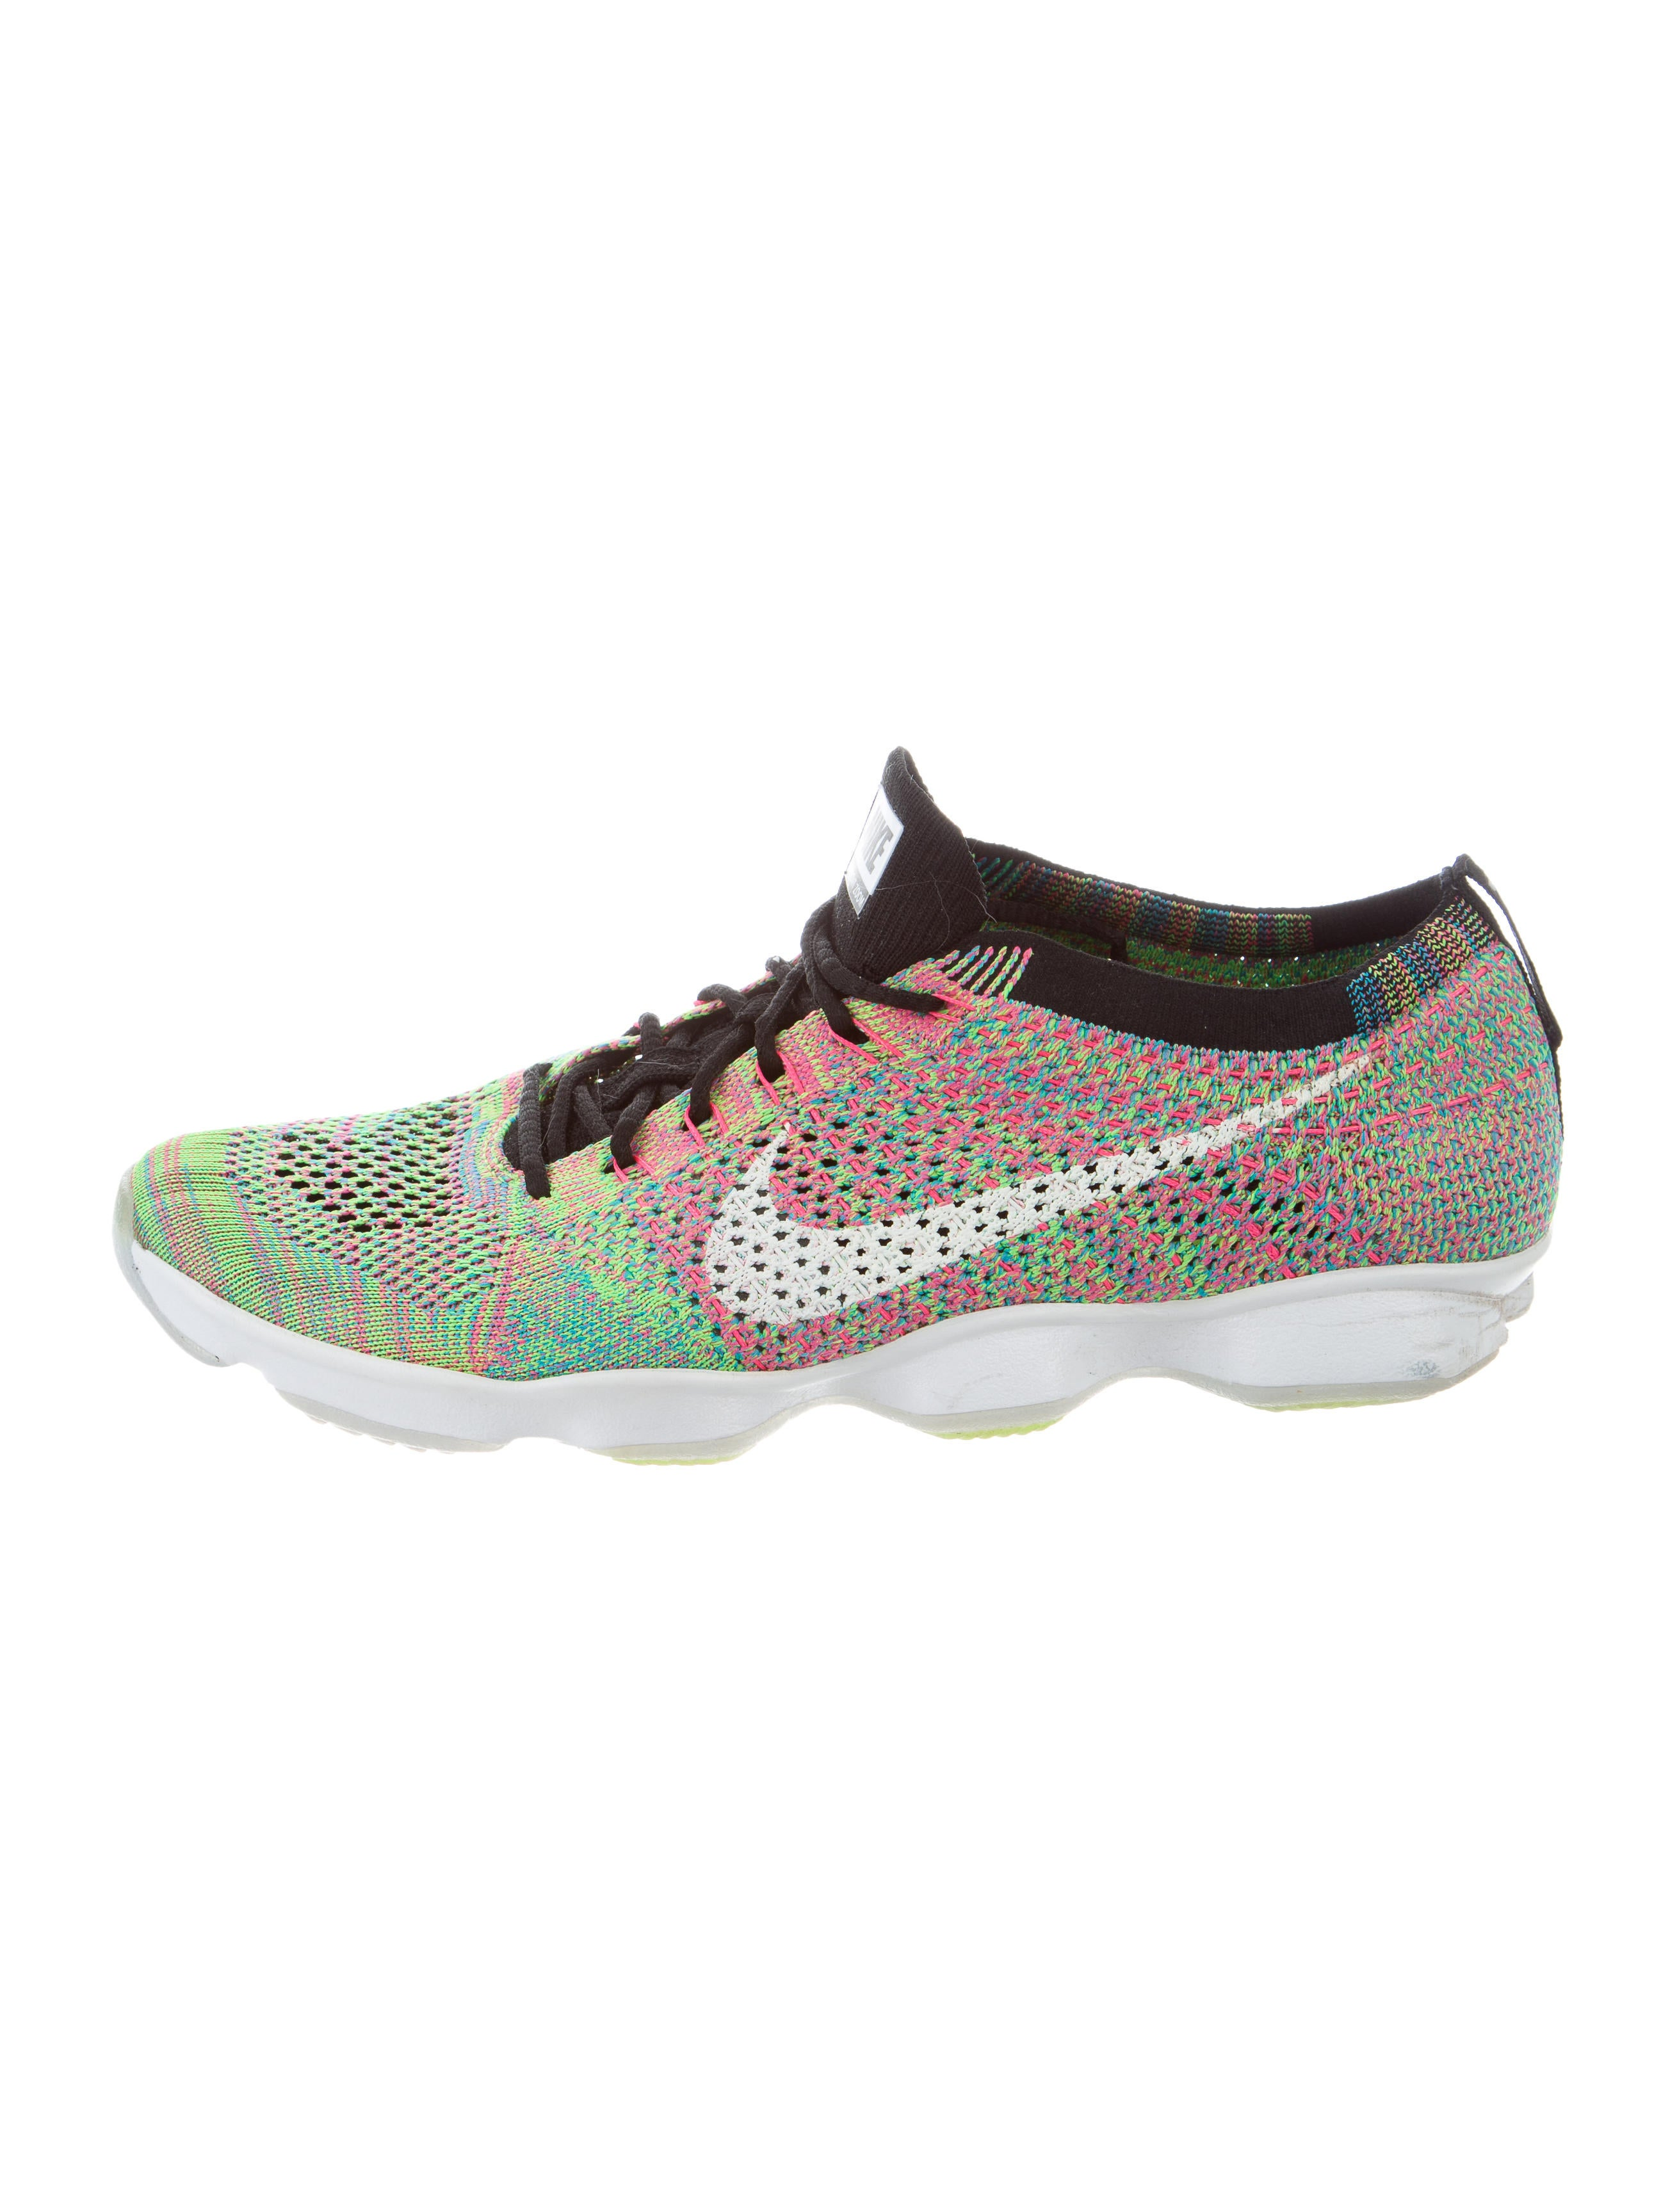 wholesale dealer b14f4 766bc discount code for questlove x nike air force 1 low cb2e2 b93d7  shop nike  zoom agility sneakers bd226 42ab0